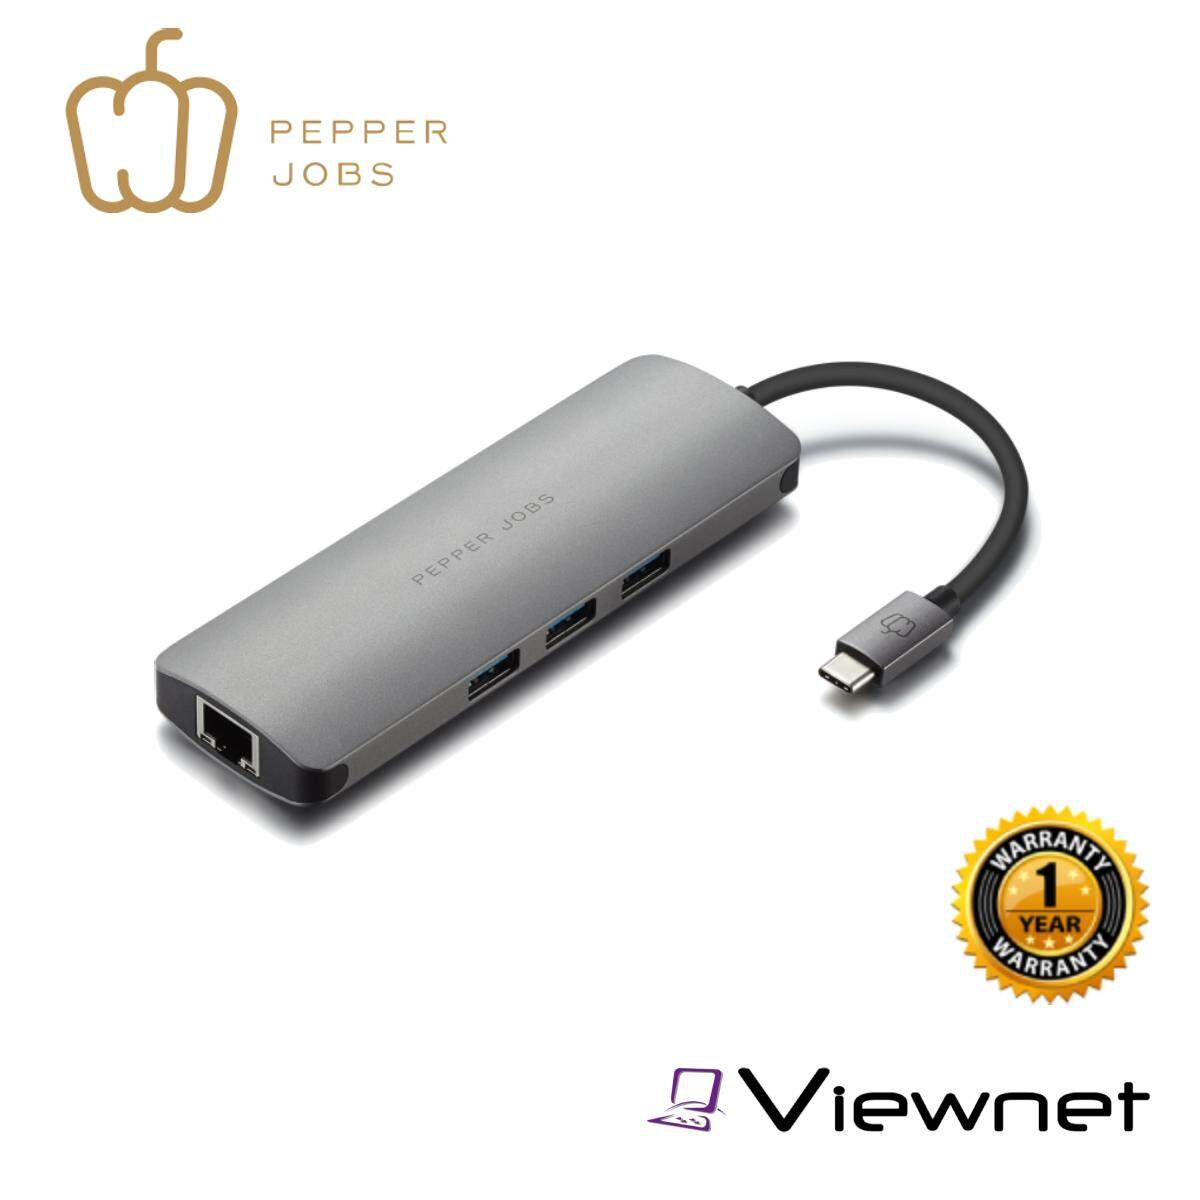 Pepper Jobs TCH-6 Ultra USB-C Digital AV Multiport & Network Hub Adapter